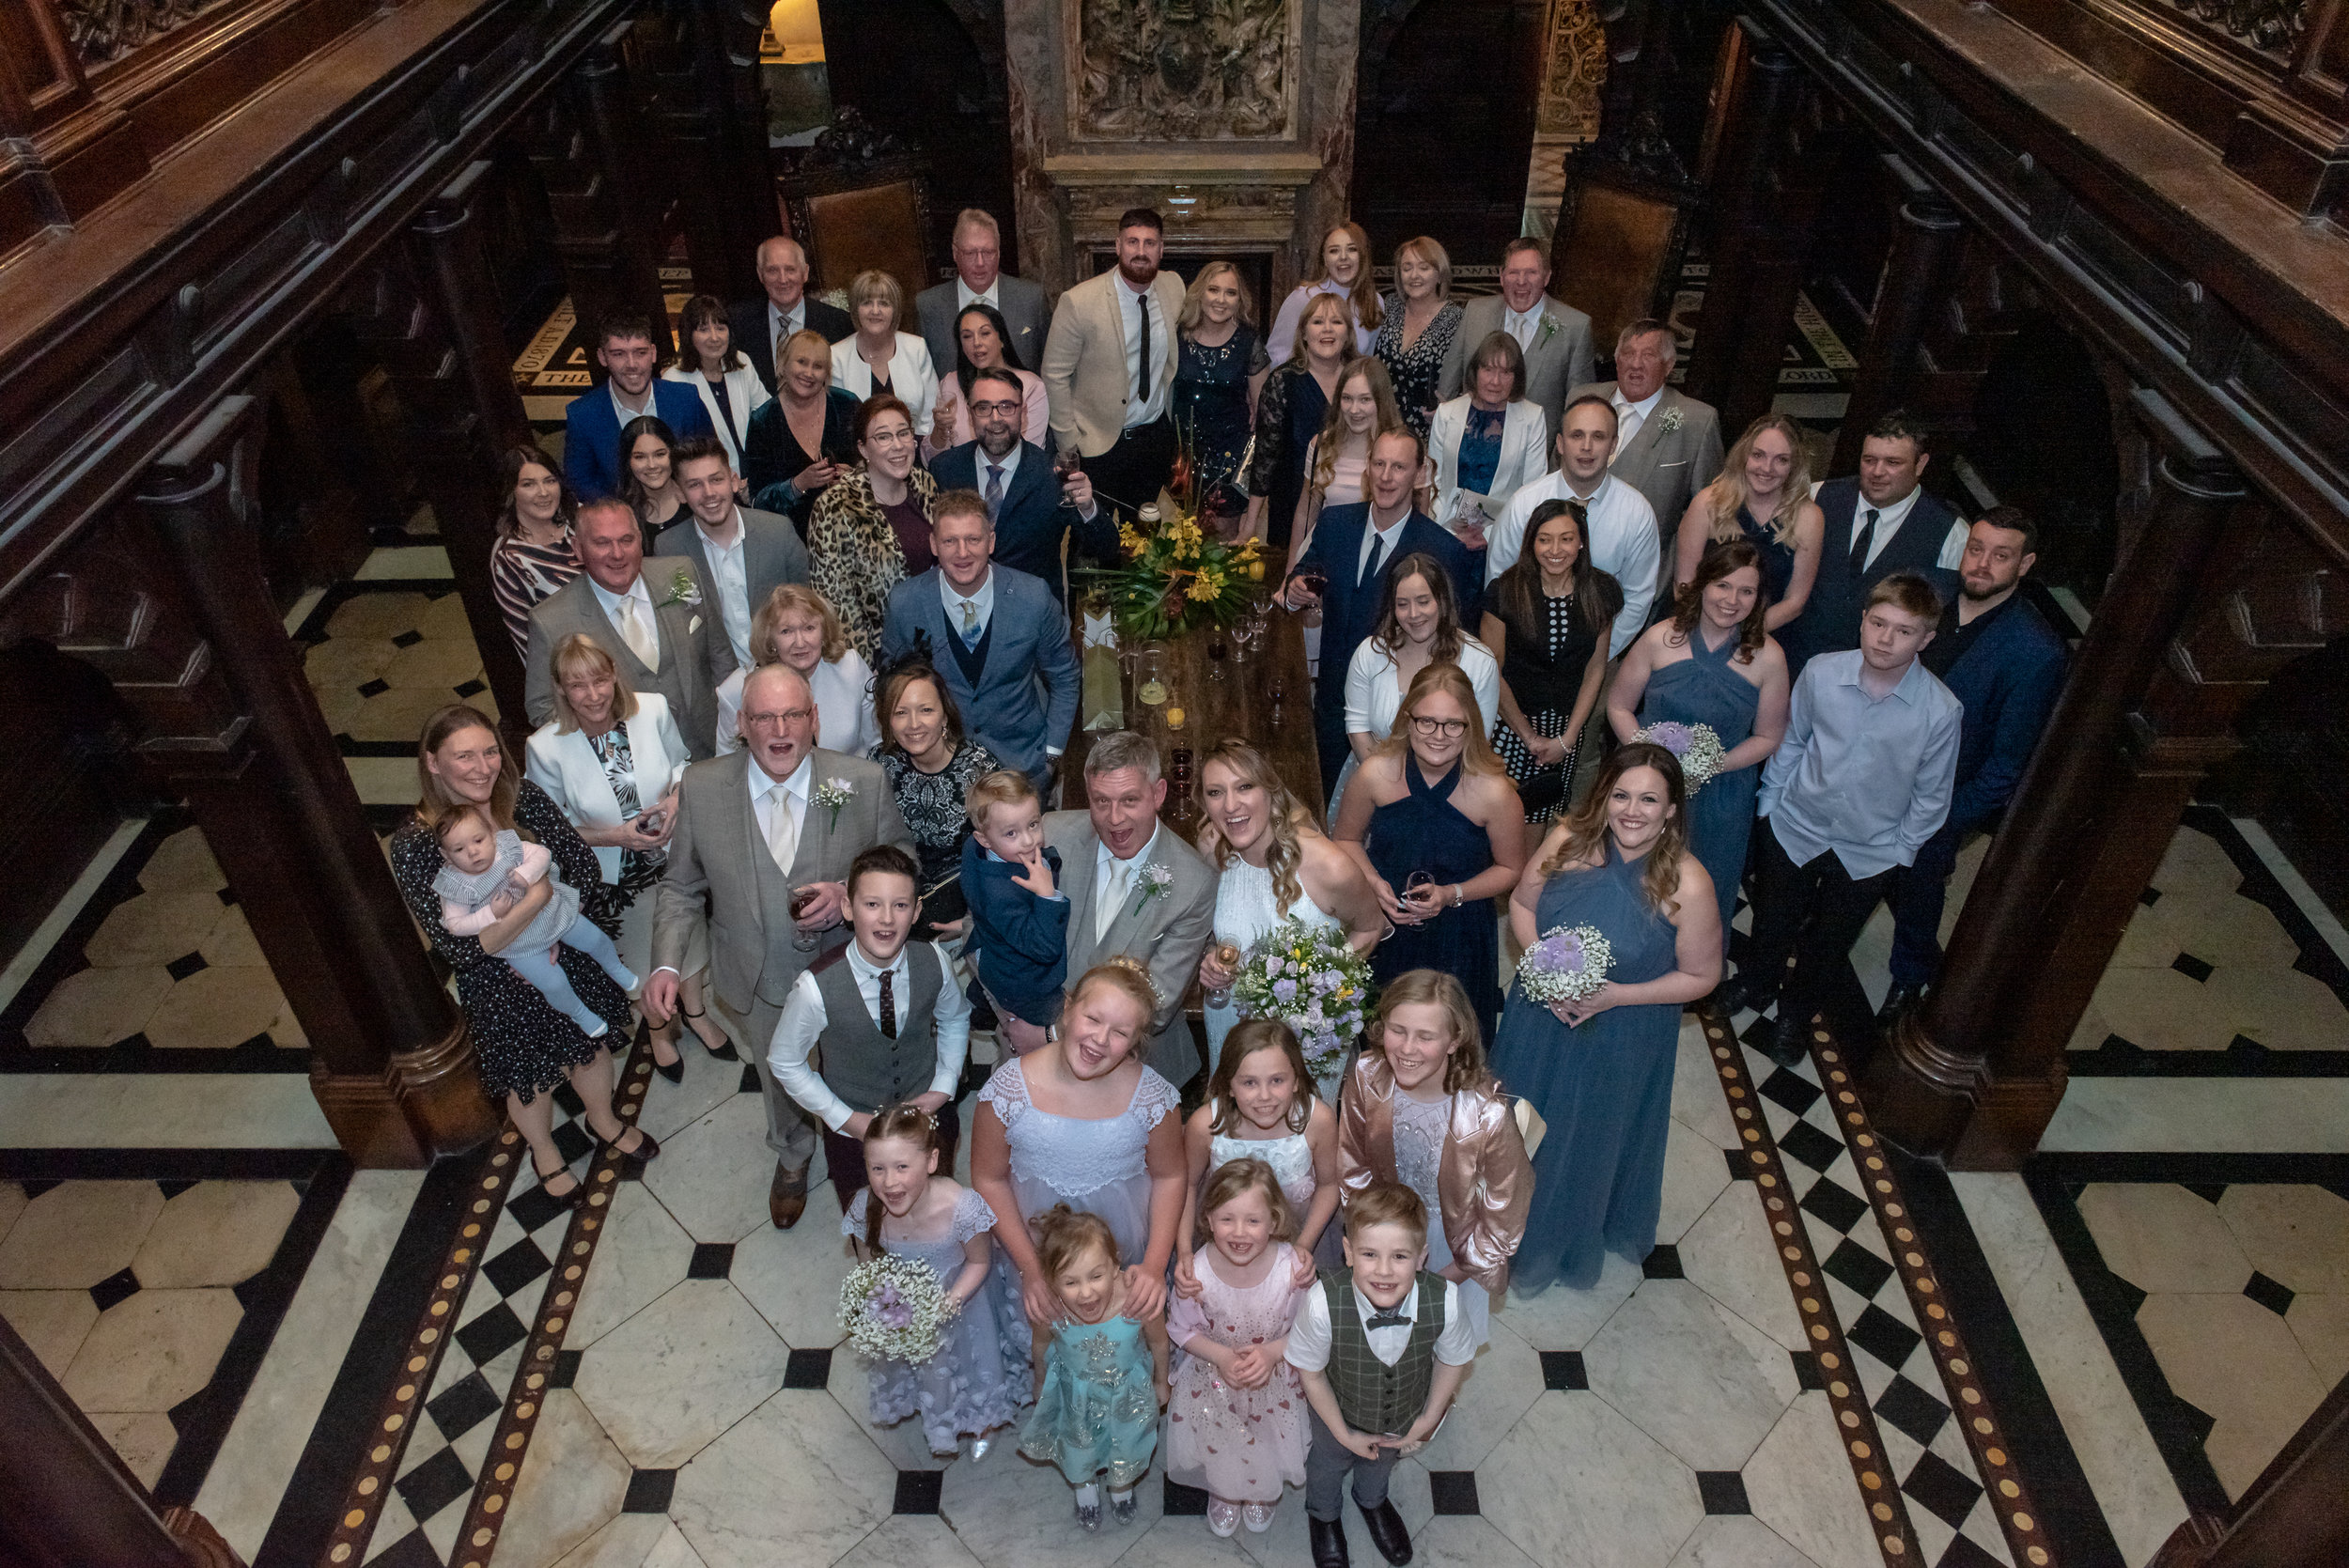 Wedding group photos indoors at Crewe Hall